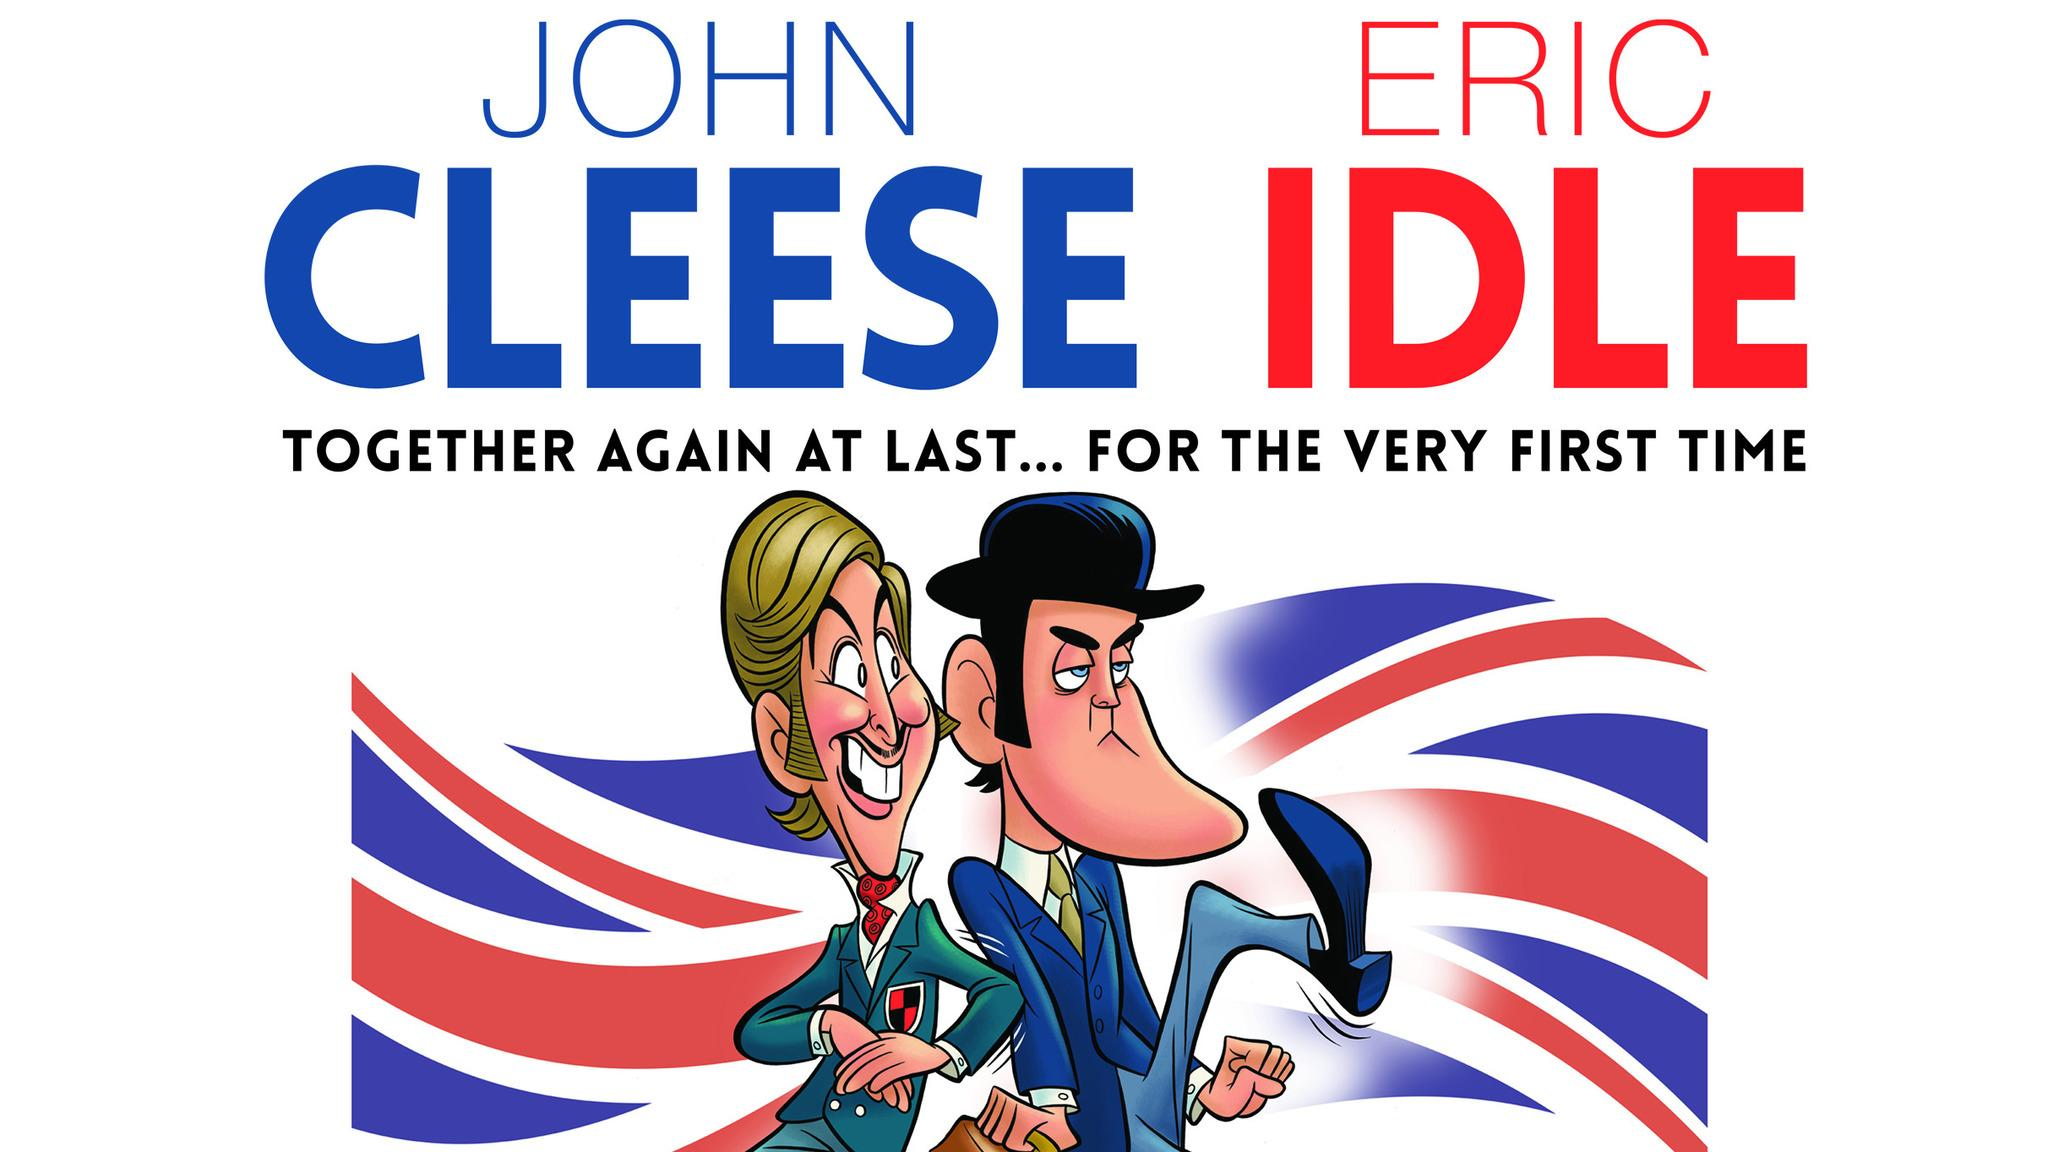 Cleese & Idle at The Plaza Theatre Performing Arts Center